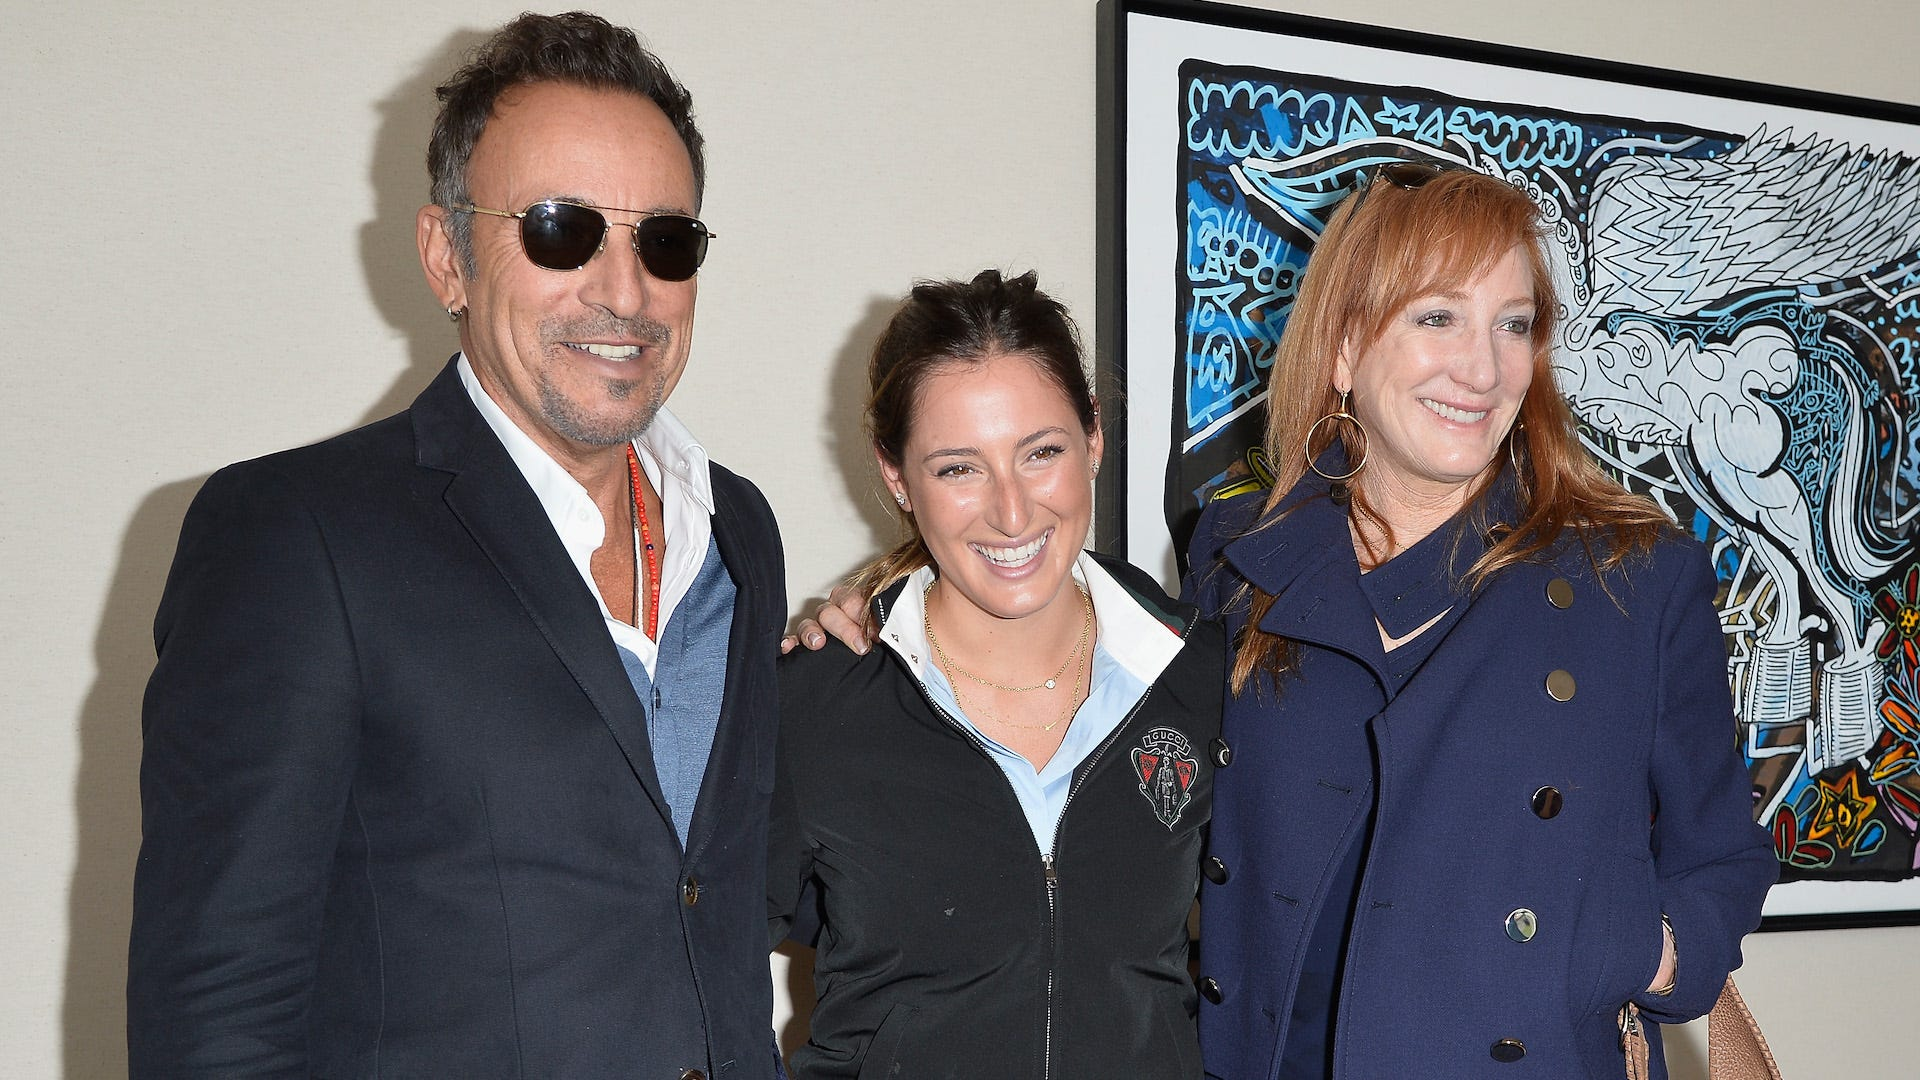 Bruce Springsteen's daughter named to the US Olympic Team